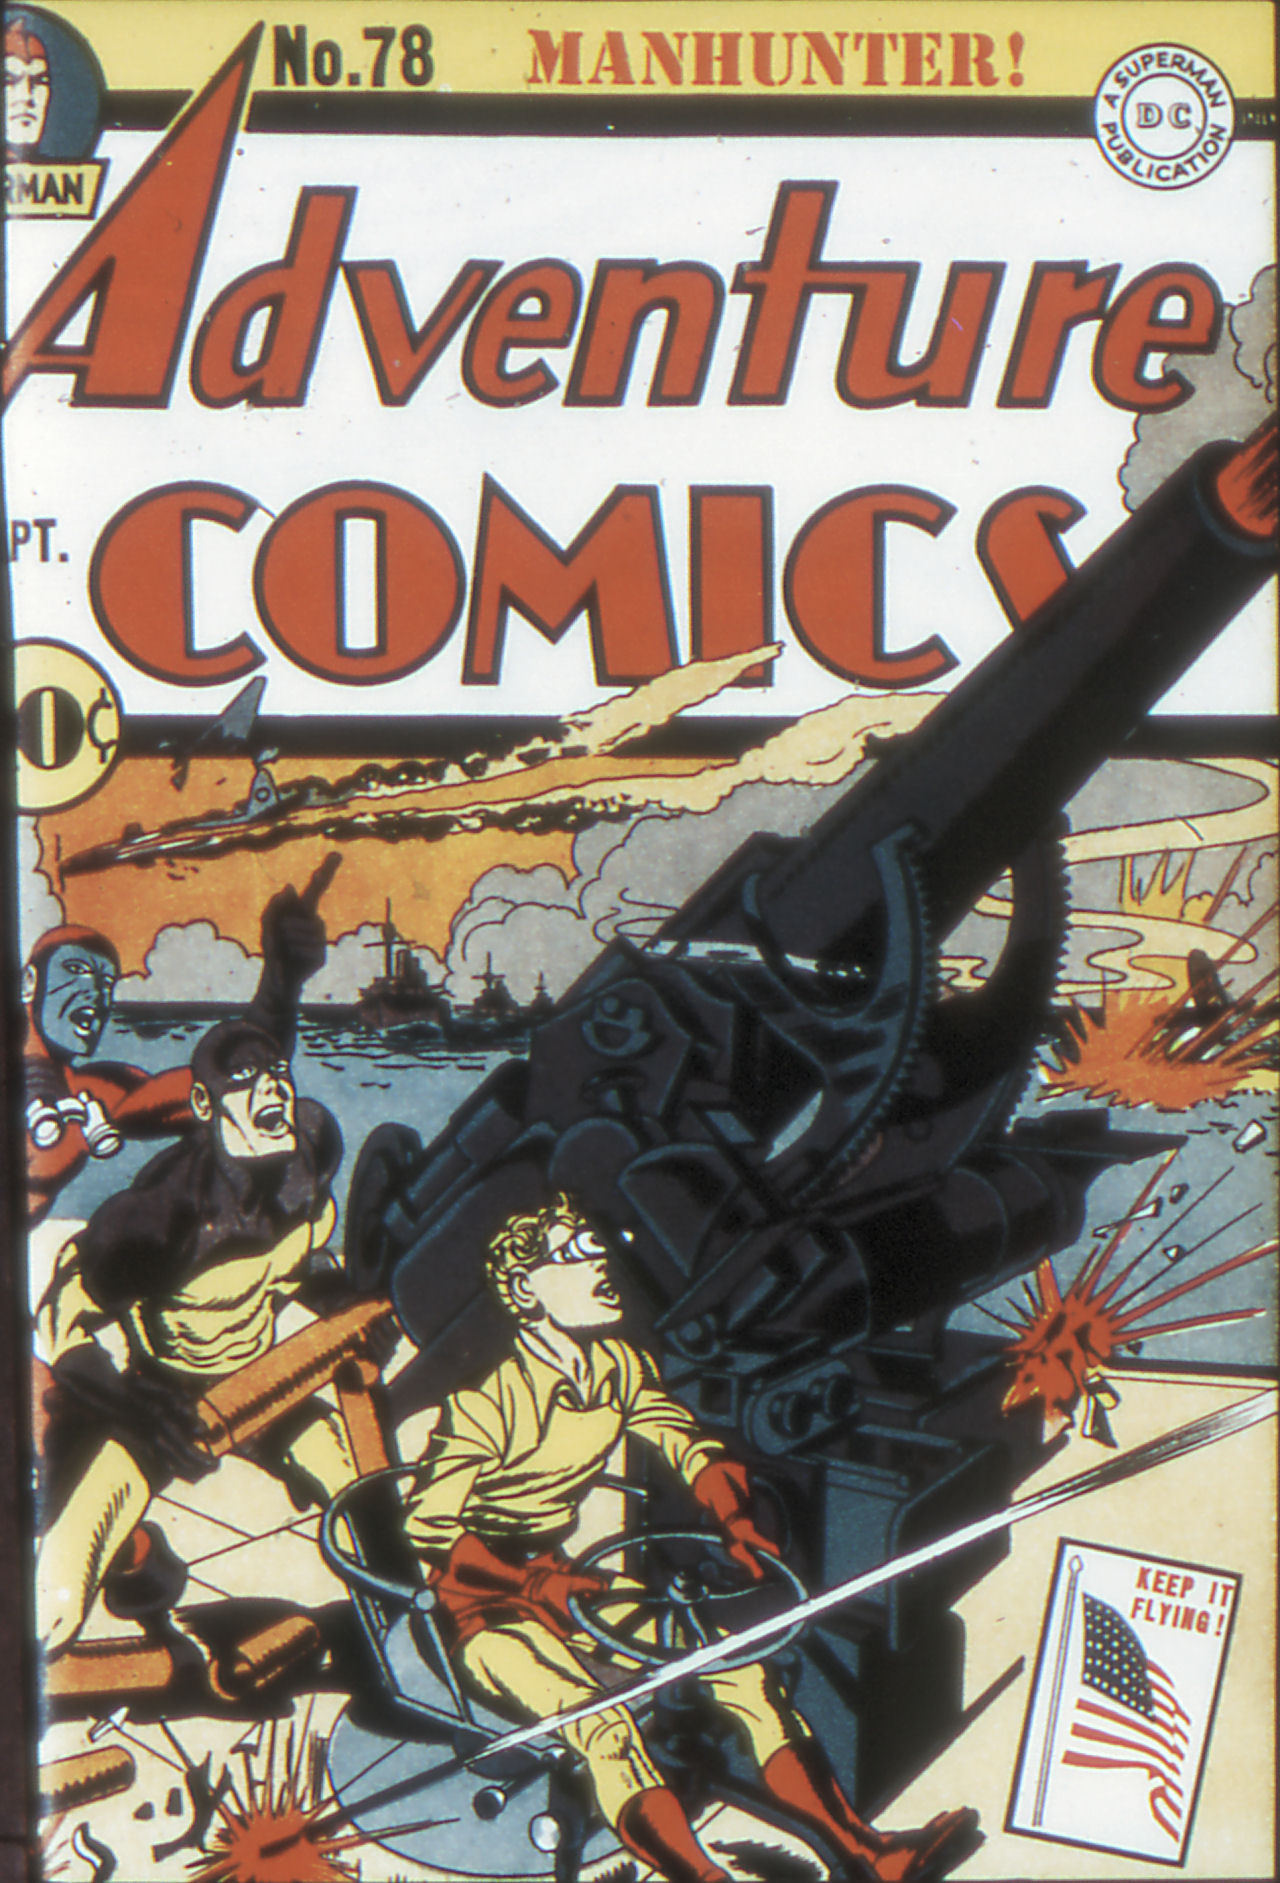 Read online Adventure Comics (1938) comic -  Issue #78 - 1